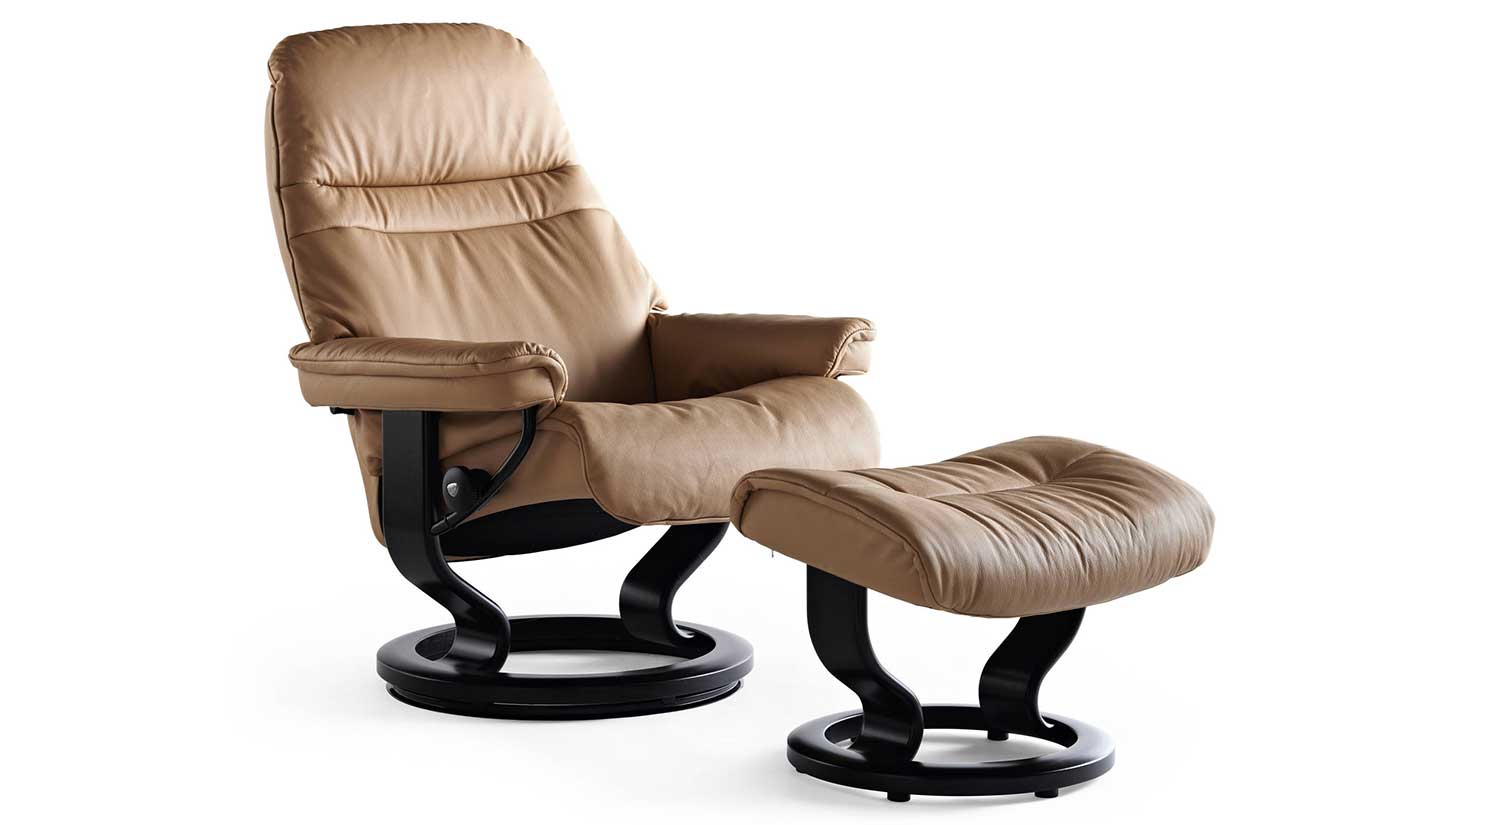 Sunrise Stressless Chairs and Ottos